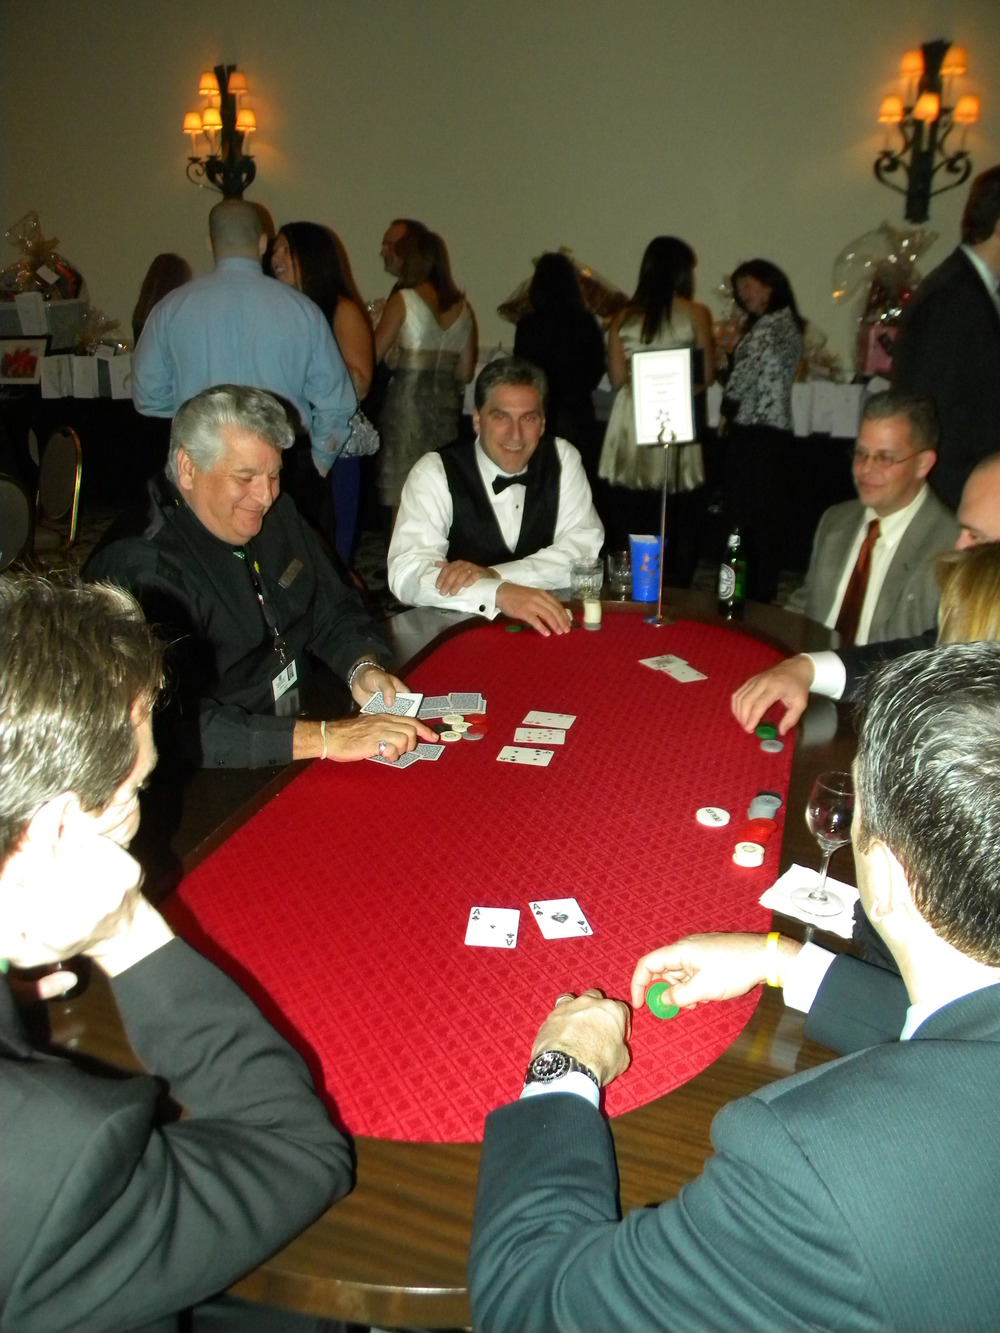 event picture Rudy Poker.JPG